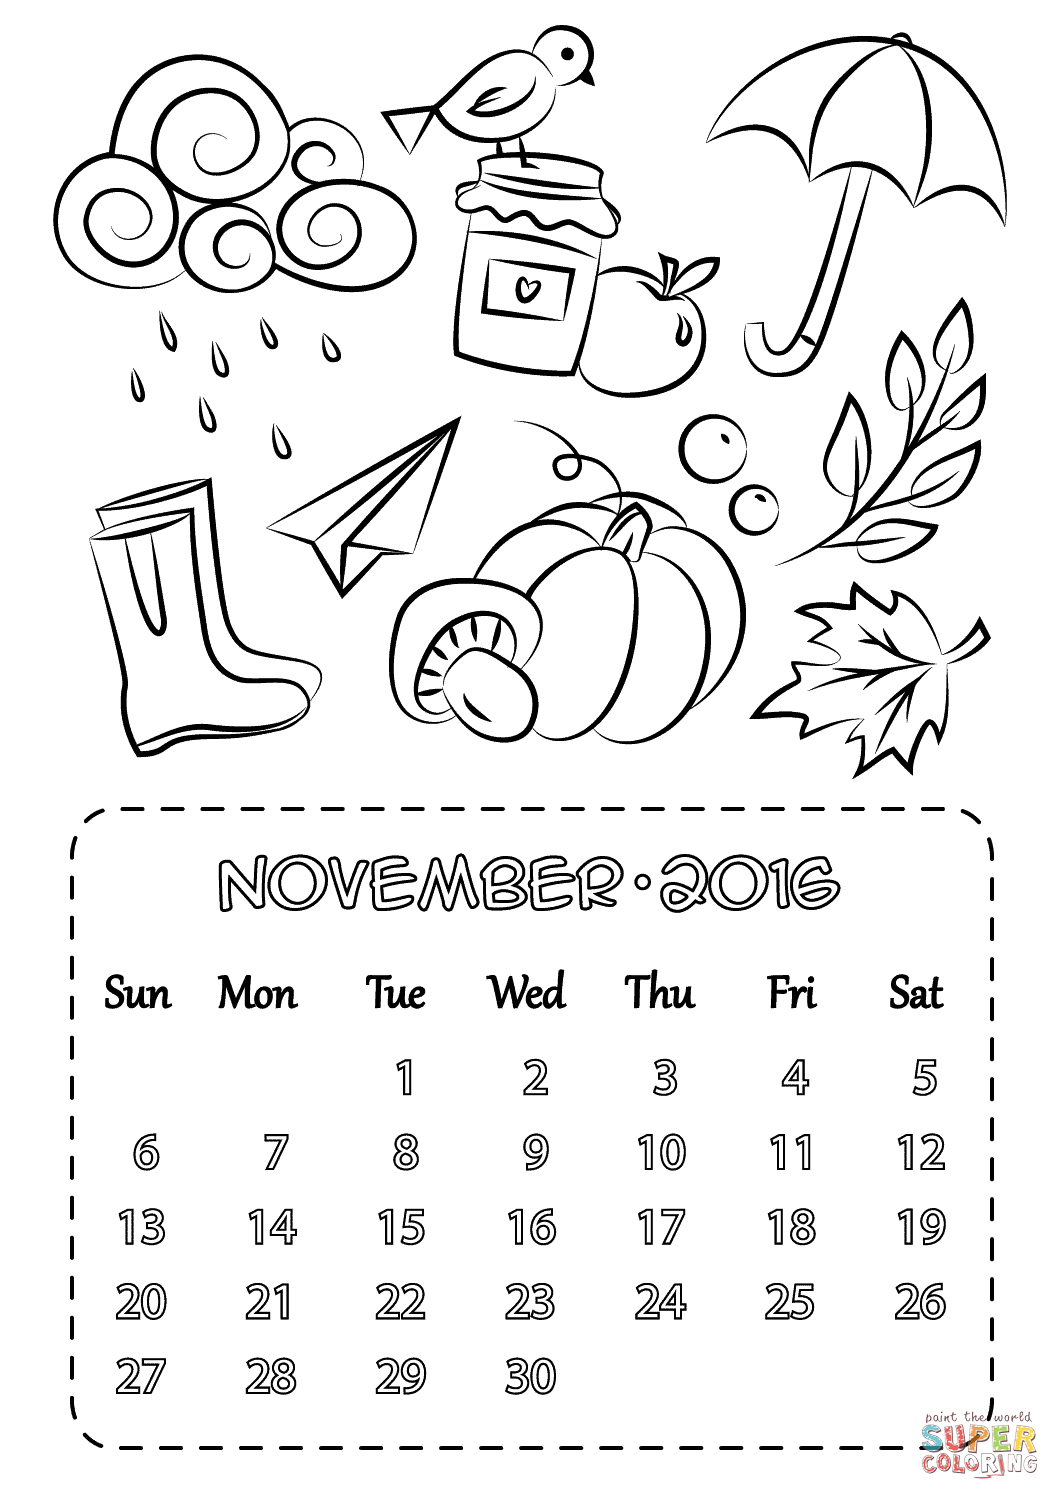 November Color Pages Coloring Book World Free November Coloring Sheets 1477892310the